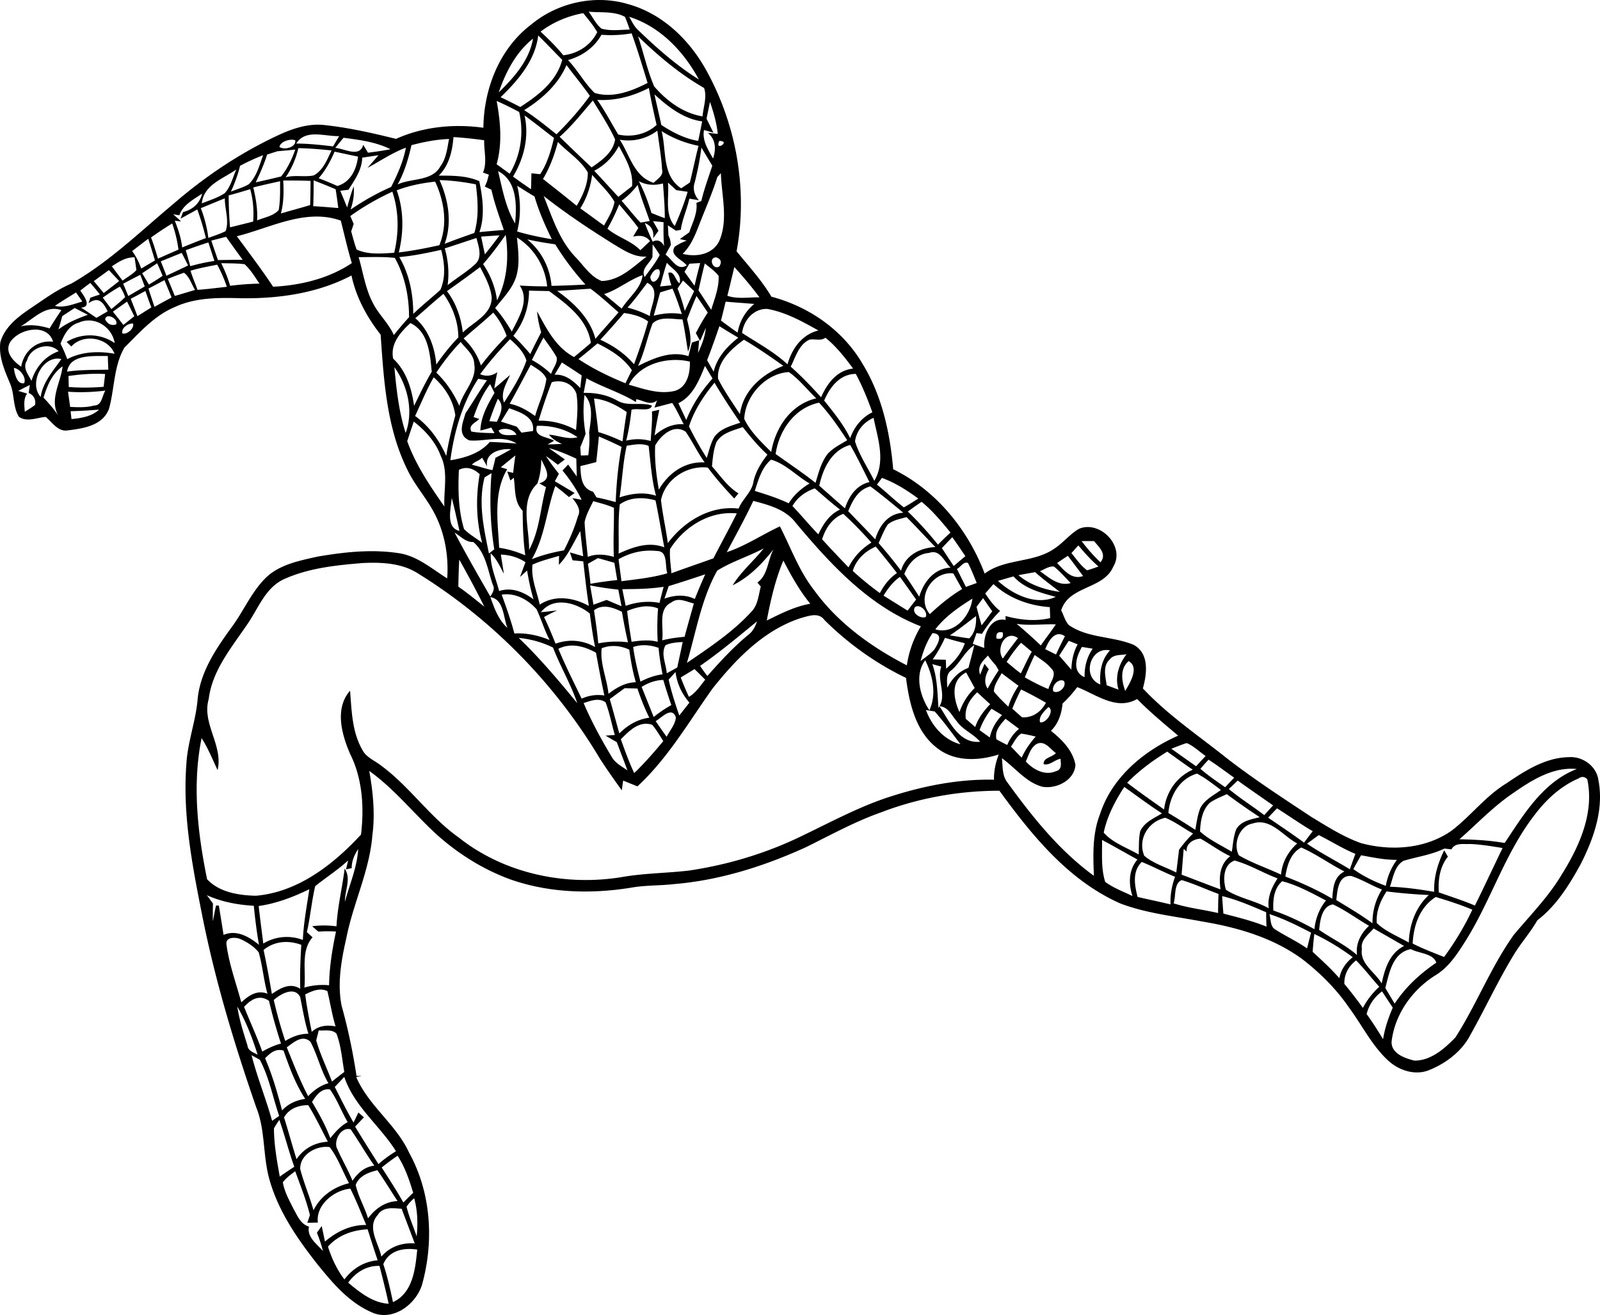 spiderman coloring pages kids printable - Free Printable Coloring Book Pages